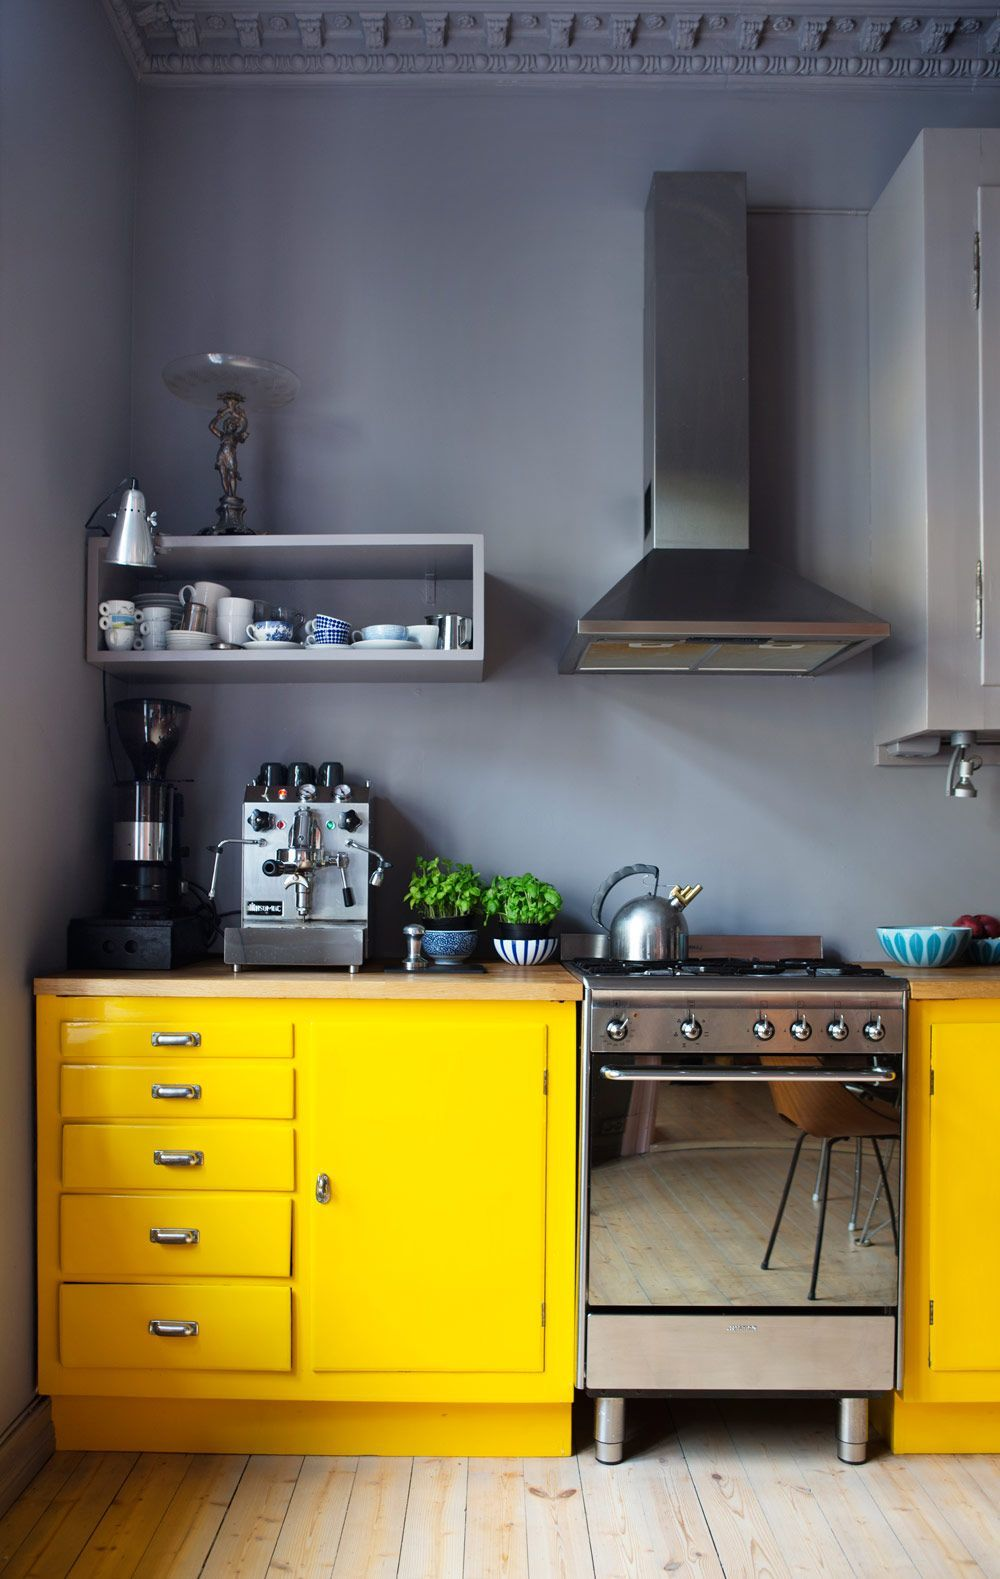 astonishing yellow kitchen walls grey cabinets | Love the combo of the yellow cabinets and gray walls ...